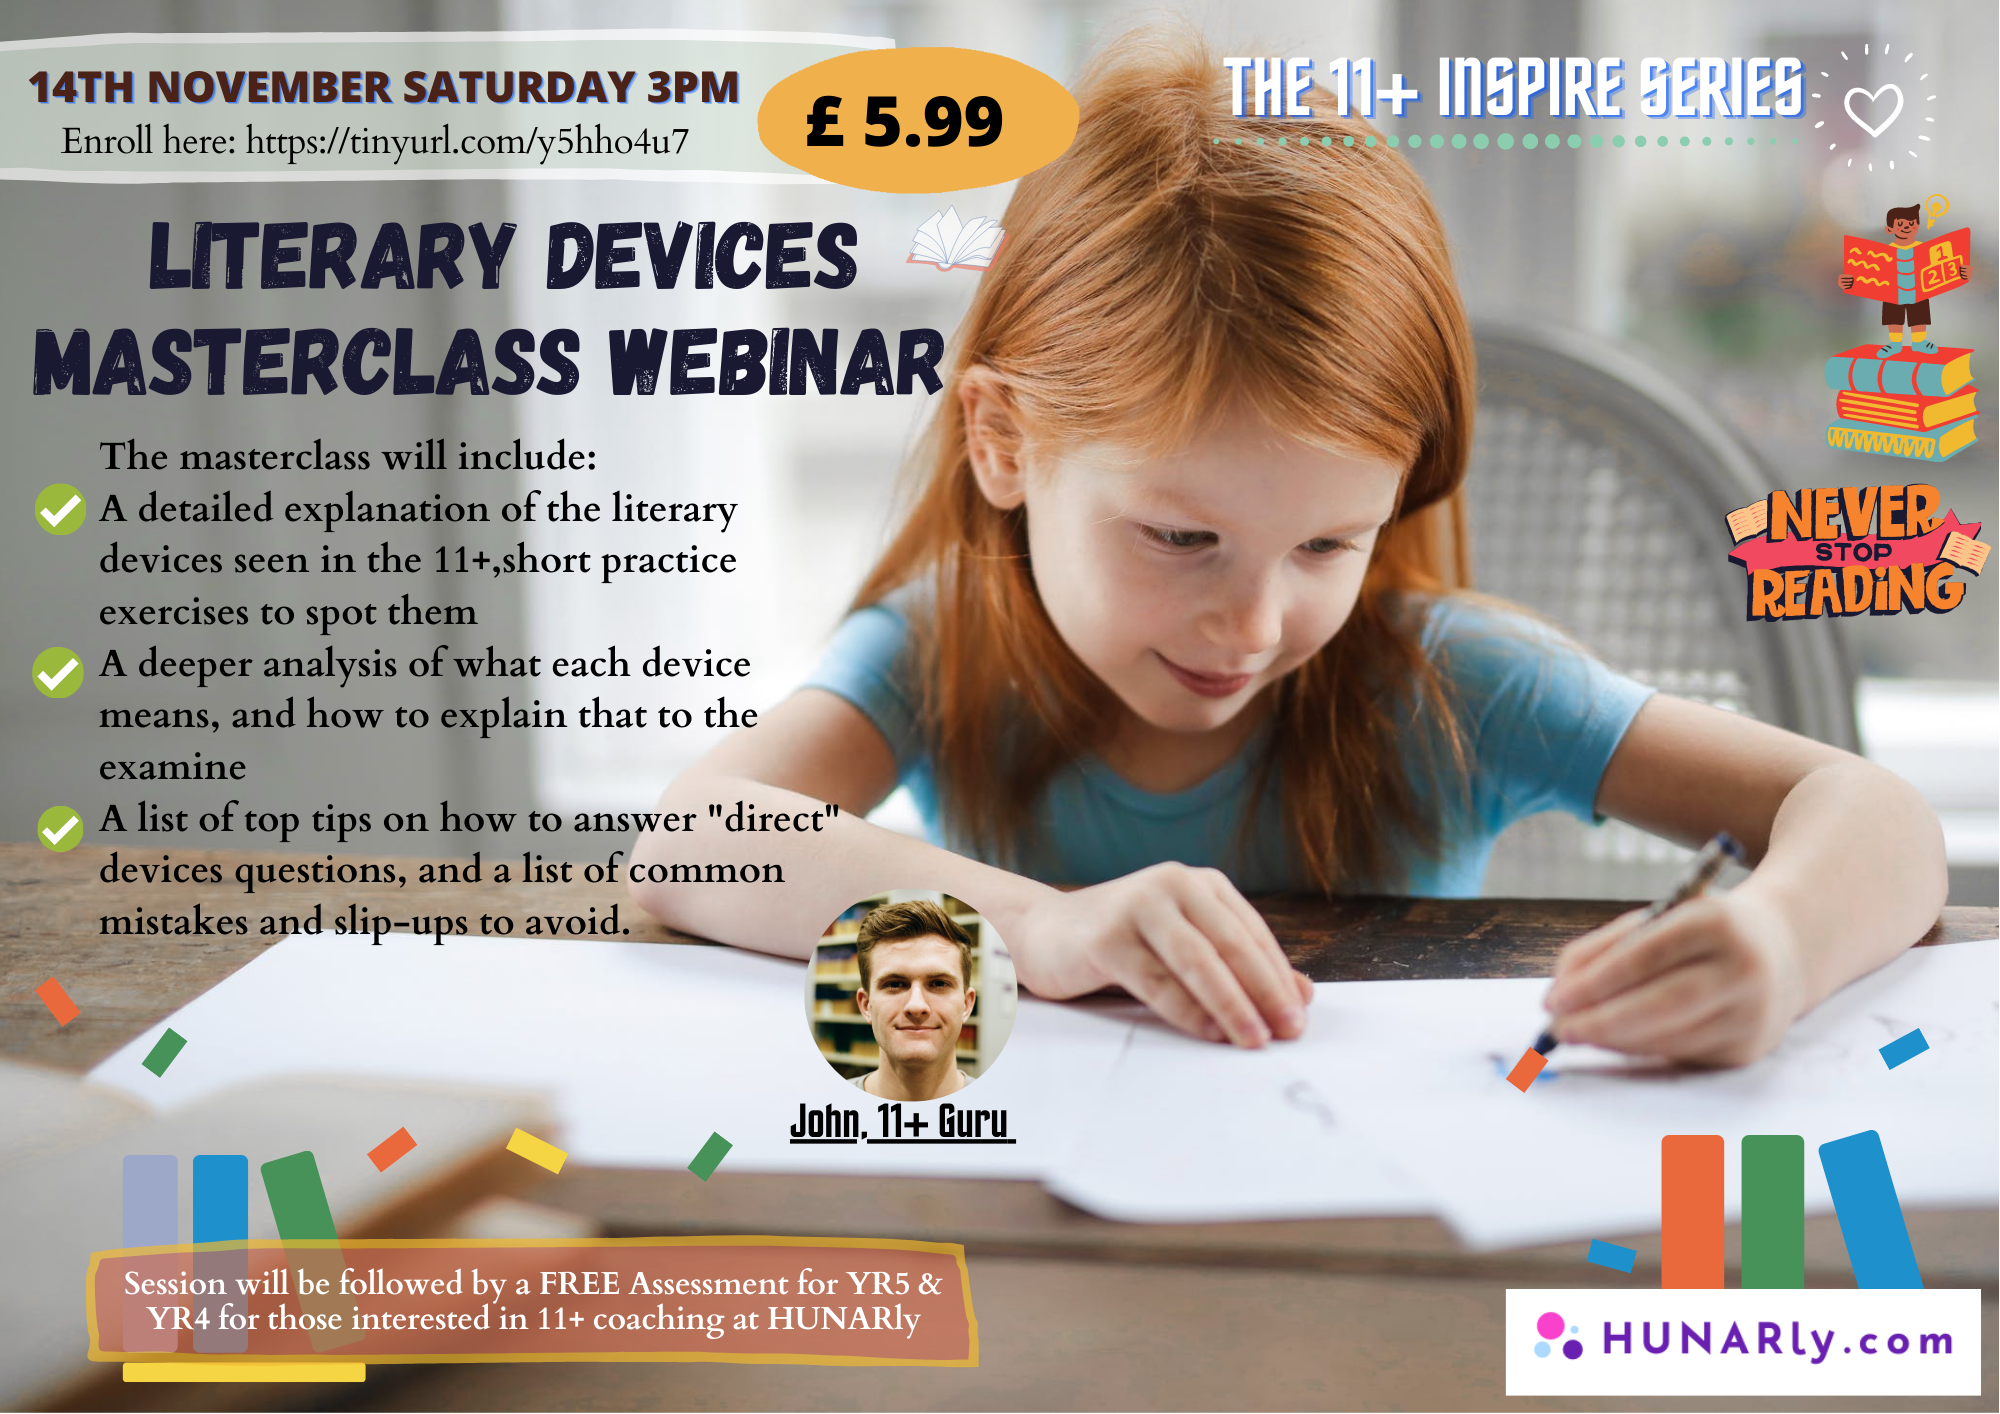 11+ Literary Devices Masterclass Webinar